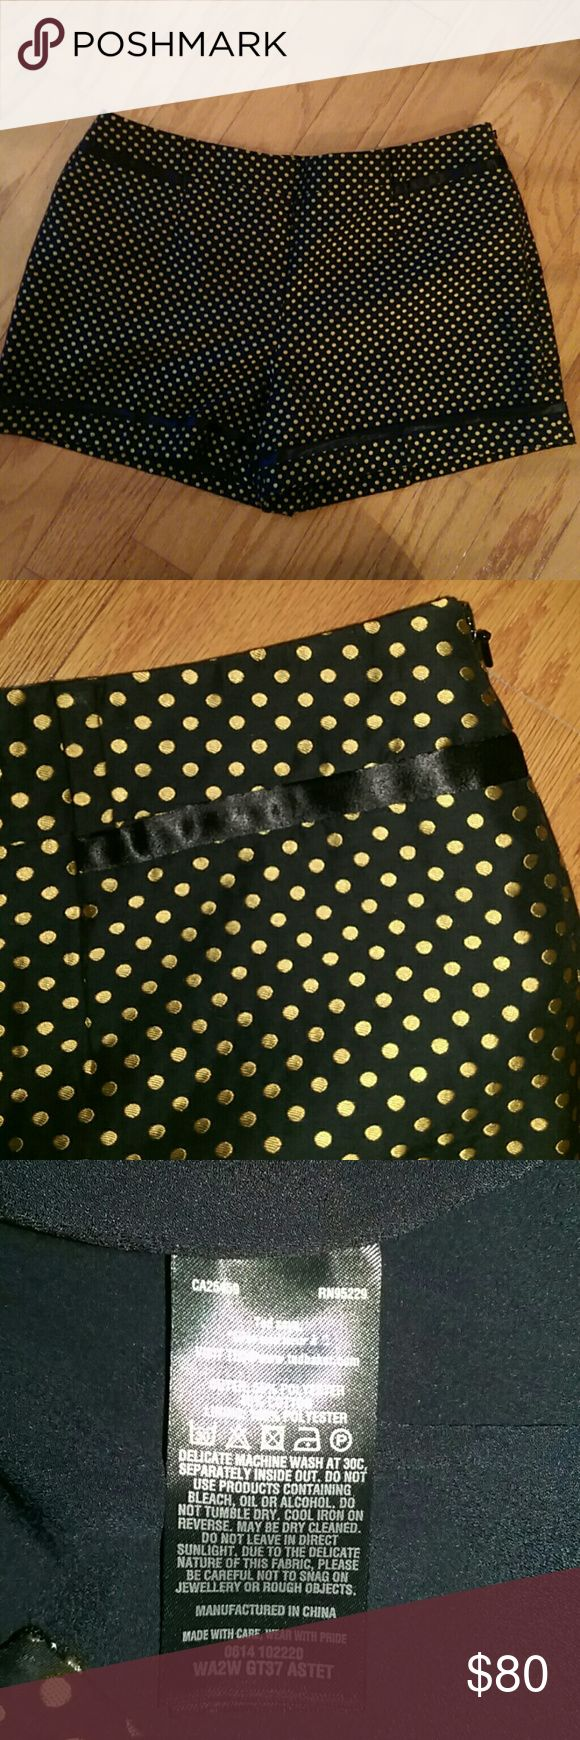 """NWOT high waisted Hot pants sz 12 TED BAKER NEW WITHOUT TAGS!!  High wasted, black hot pants with gold colored polka dots shorts/hot pants from TED BAKER LONDON  Ted size 5 (US size 12)  Waist: 36"""" Hips: 46"""" Length (outside of waist to hem): 14"""" Inseam: 3.5"""" Rise : 11""""  Flat front. High wasted. Satin trim on front & back (faux pockets), and around legs. Side zip and hook fastening. Fully lined.   Outer: 55% polyester, 45% cotton. Lining: 100% polyester.   In perfect New without tags…"""